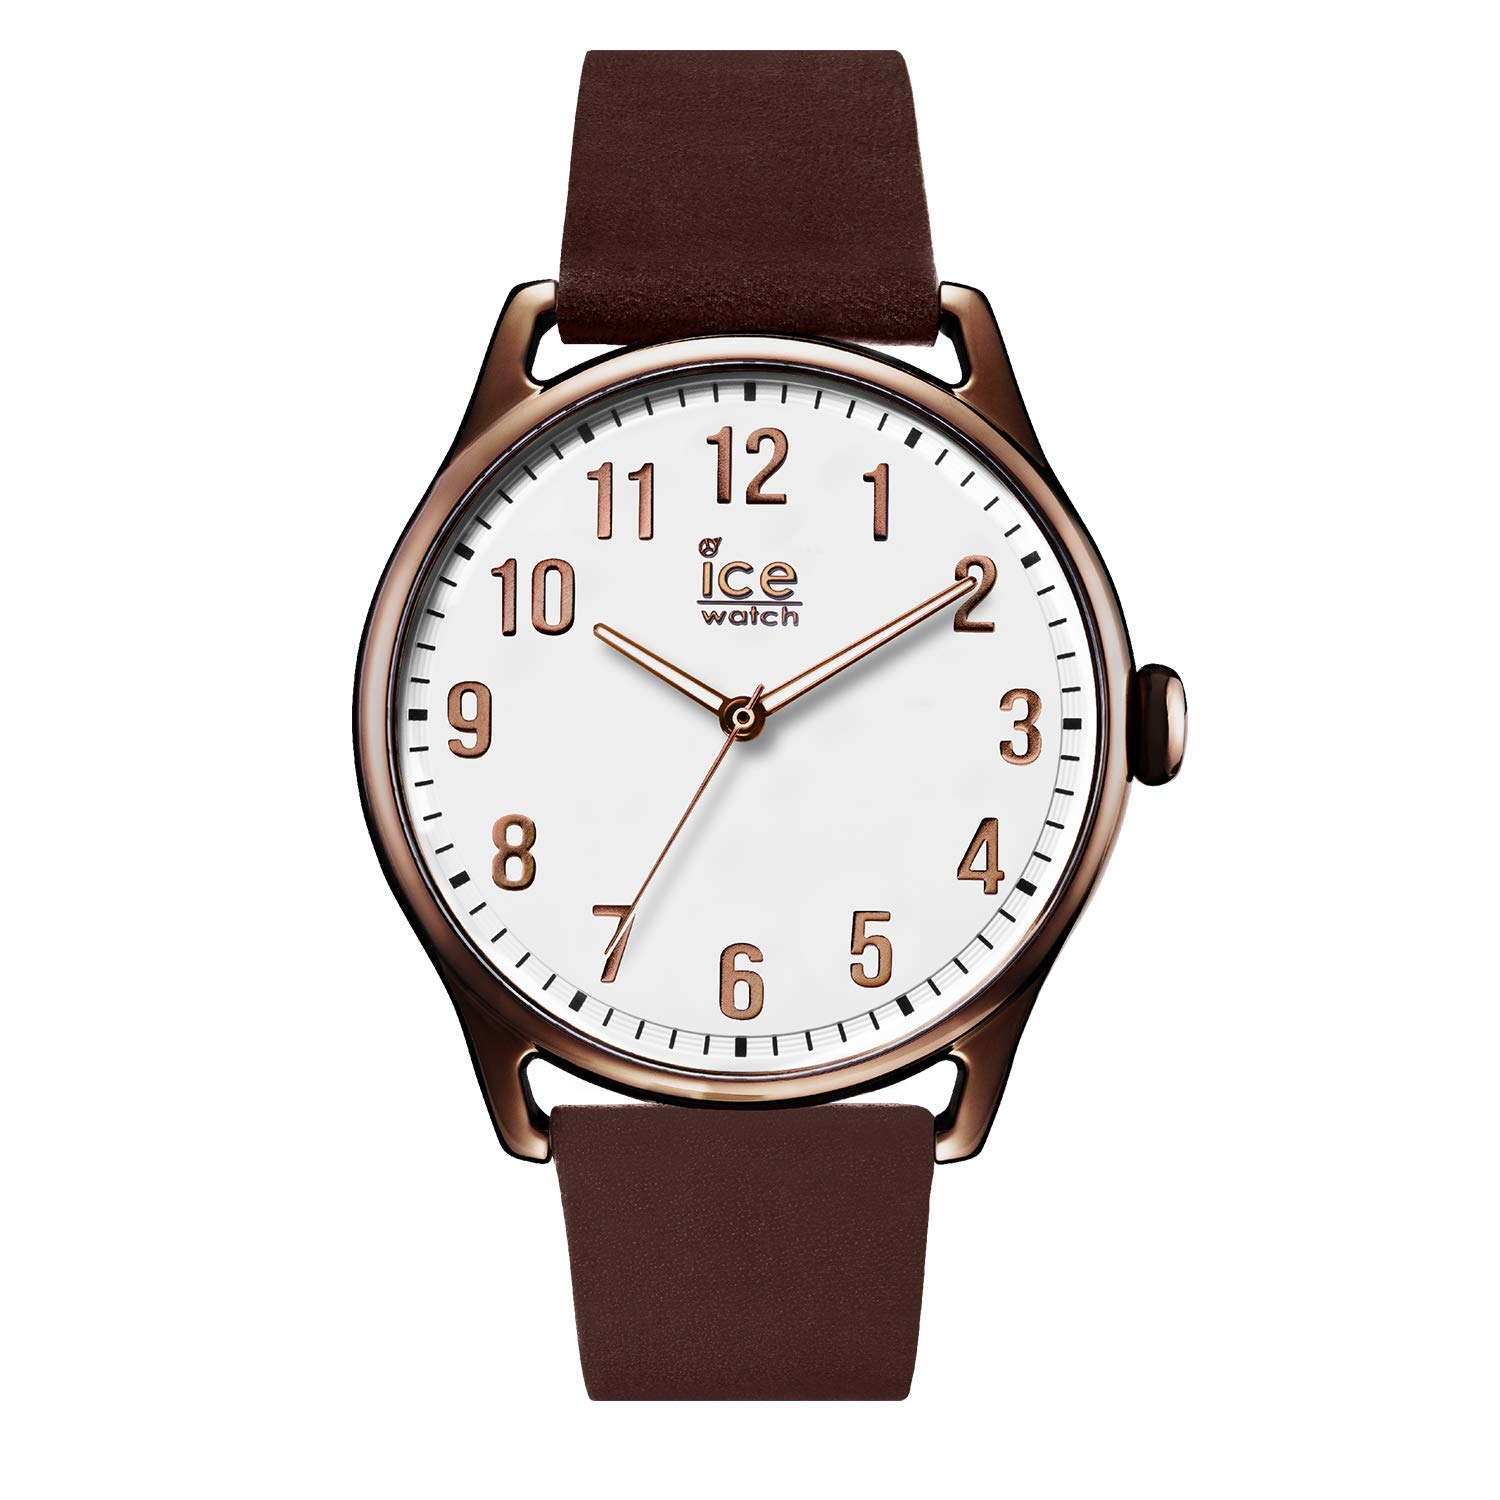 Ice-Watch - ICE time Brown White - Reloj marrone para Hombre con Correa de cuero - 013047 (Large)